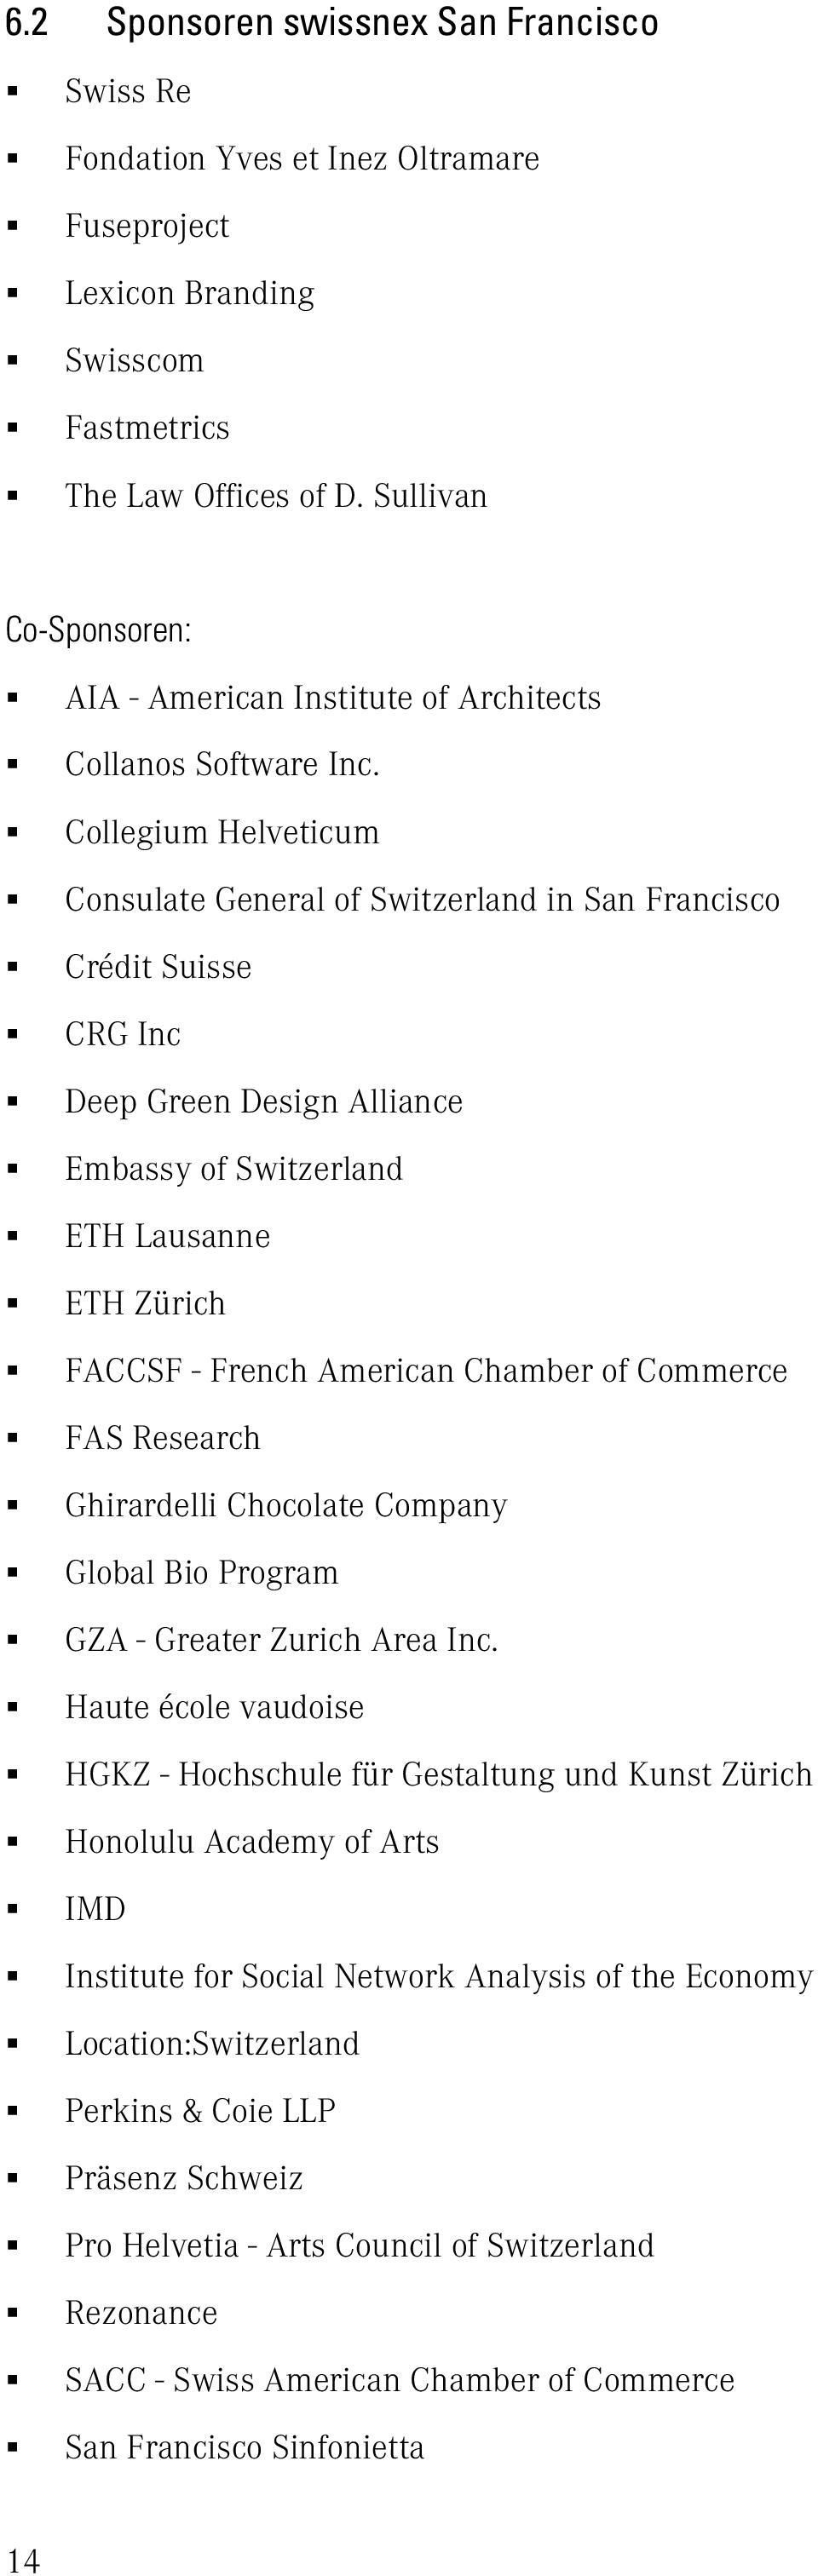 Collegium Helveticum Consulate General of Switzerland in San Francisco Crédit Suisse CRG Inc Deep Green Design Alliance Embassy of Switzerland ETH Lausanne ETH Zürich FACCSF - French American Chamber